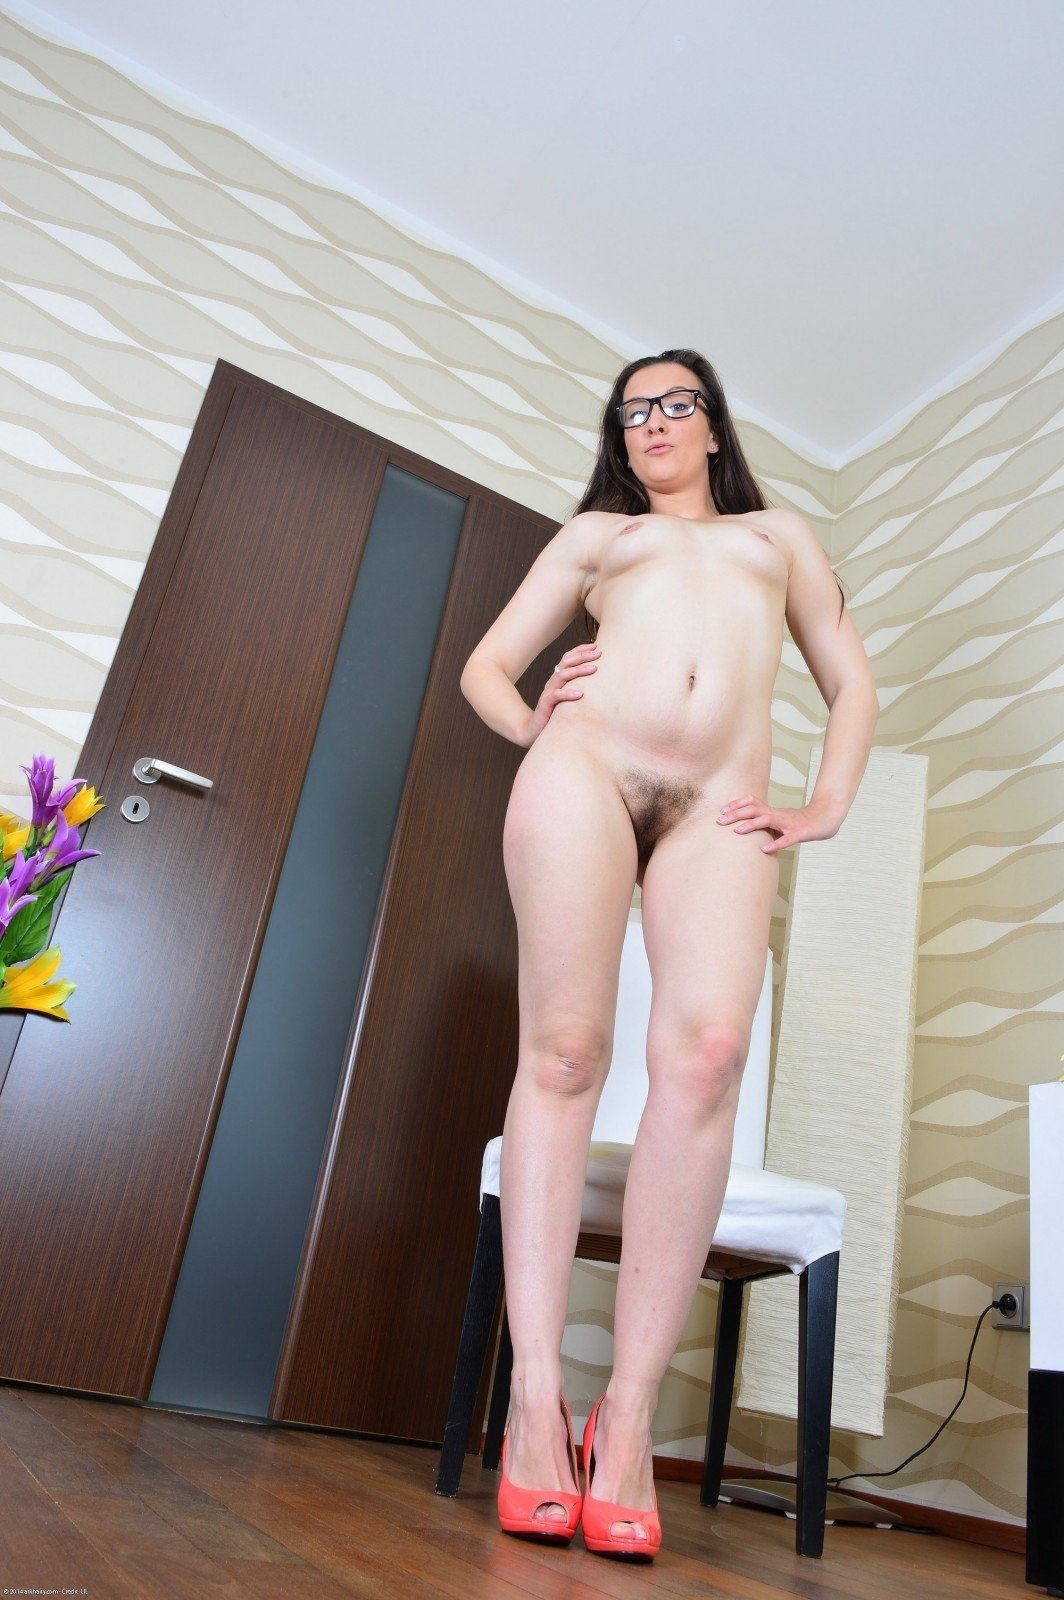 Las vegas wife fucked in hotel My husband loves tranny cock vids